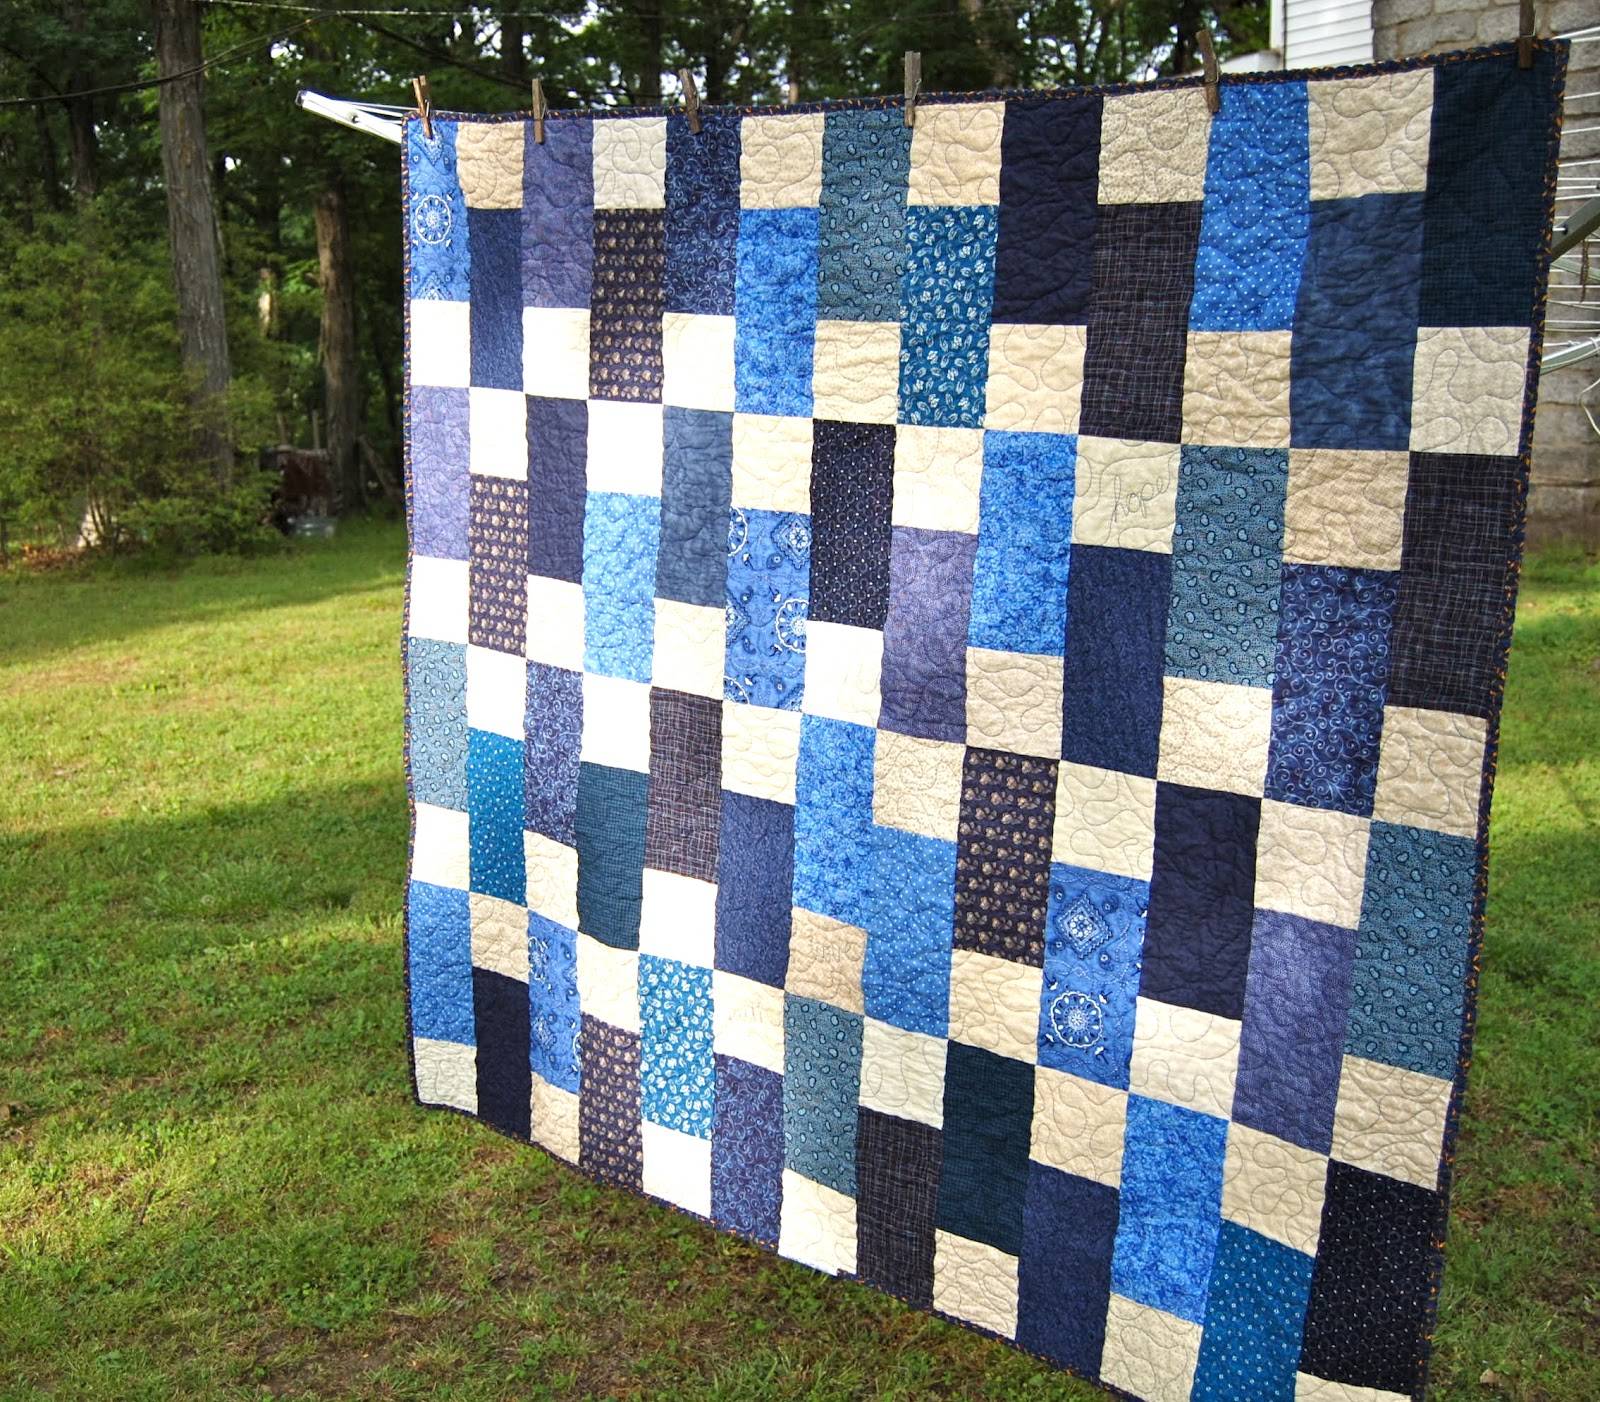 Quilt Patterns For A Man : Confessions of a Fabric Addict: Make-A-List Monday #91! More Done Than I Thought...